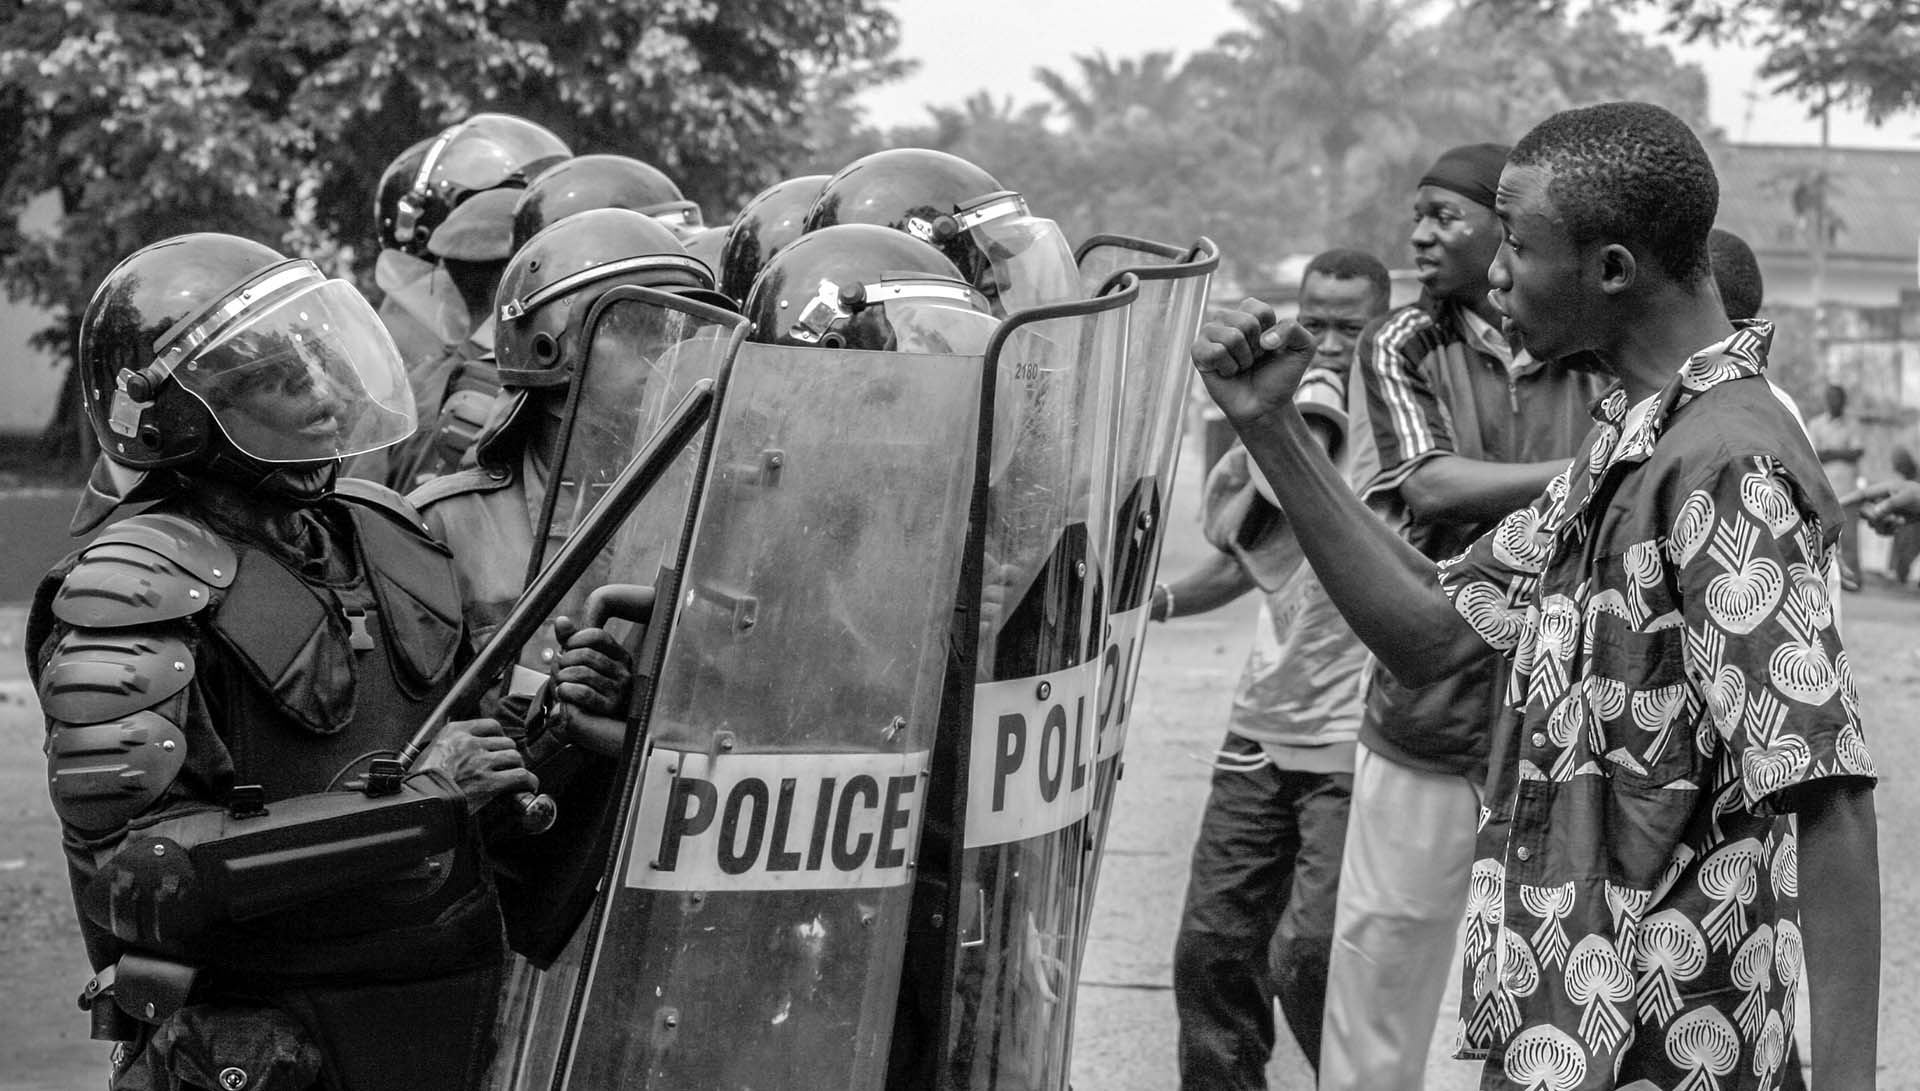 Supporters of UDPS, Congo's main opposition party which boycotted the upcoming Presidential and National election, confront riot police on the street of Kinshasa June 30, 2006, the nation's independence day.